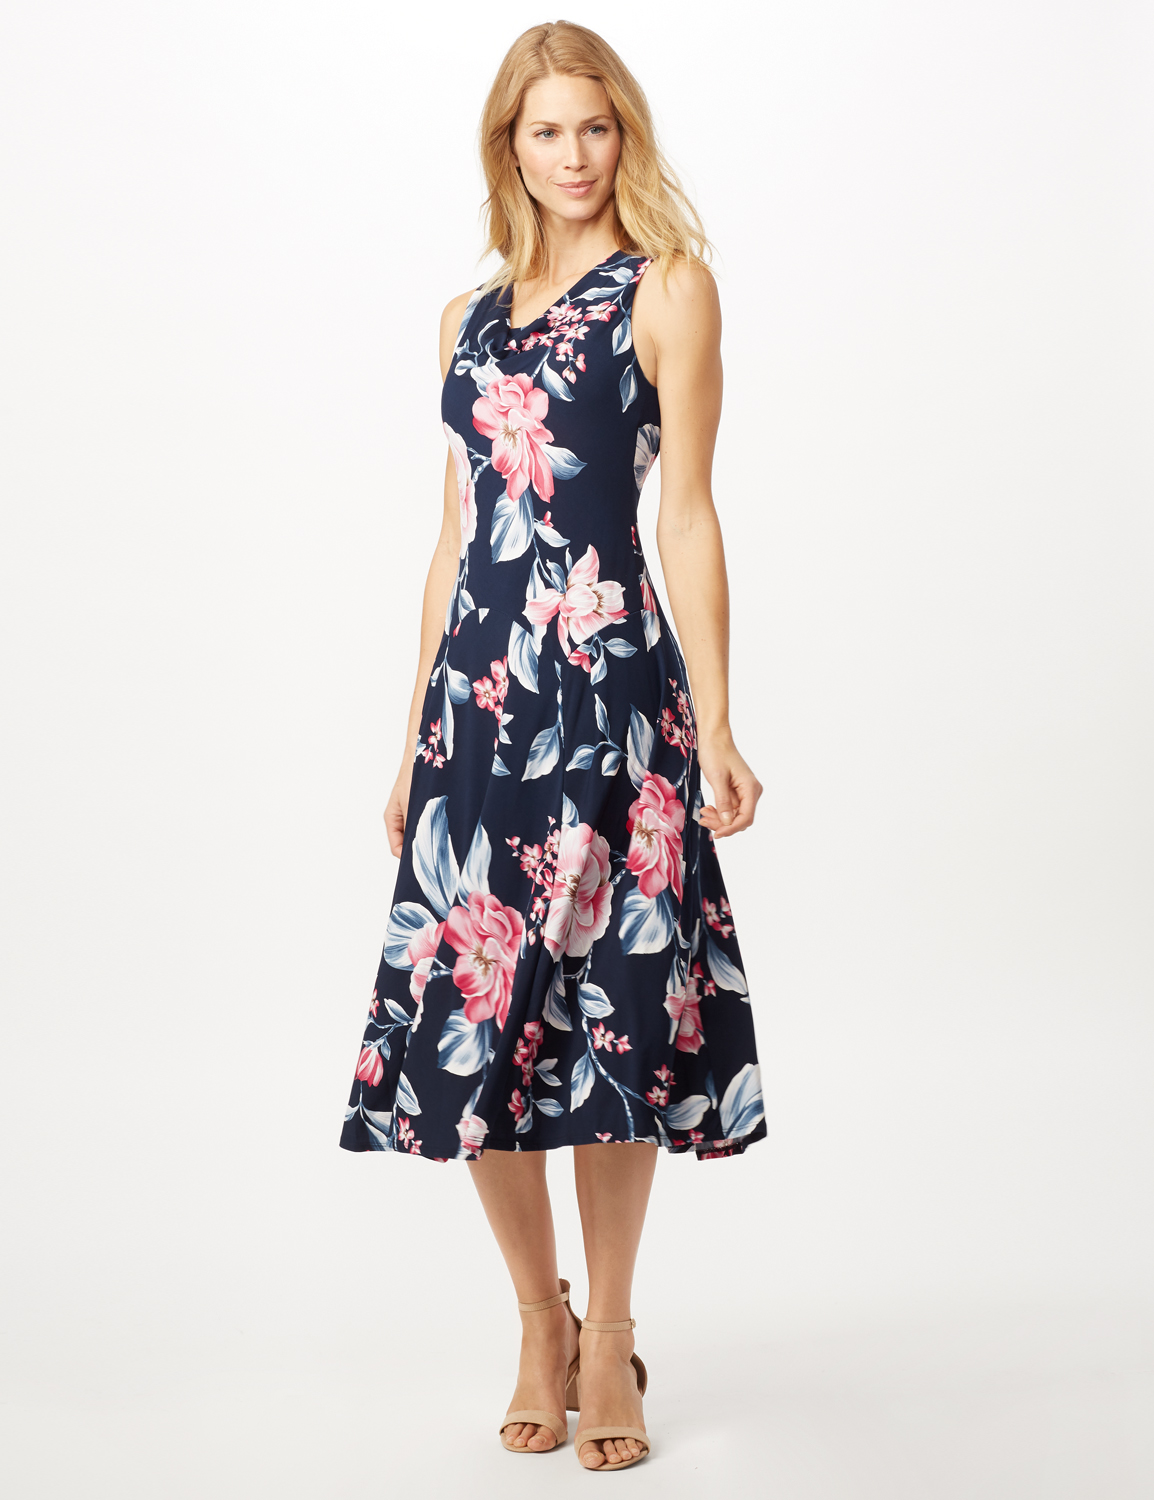 Floral Dress with Crochet Sweater - Navy/pink - Front